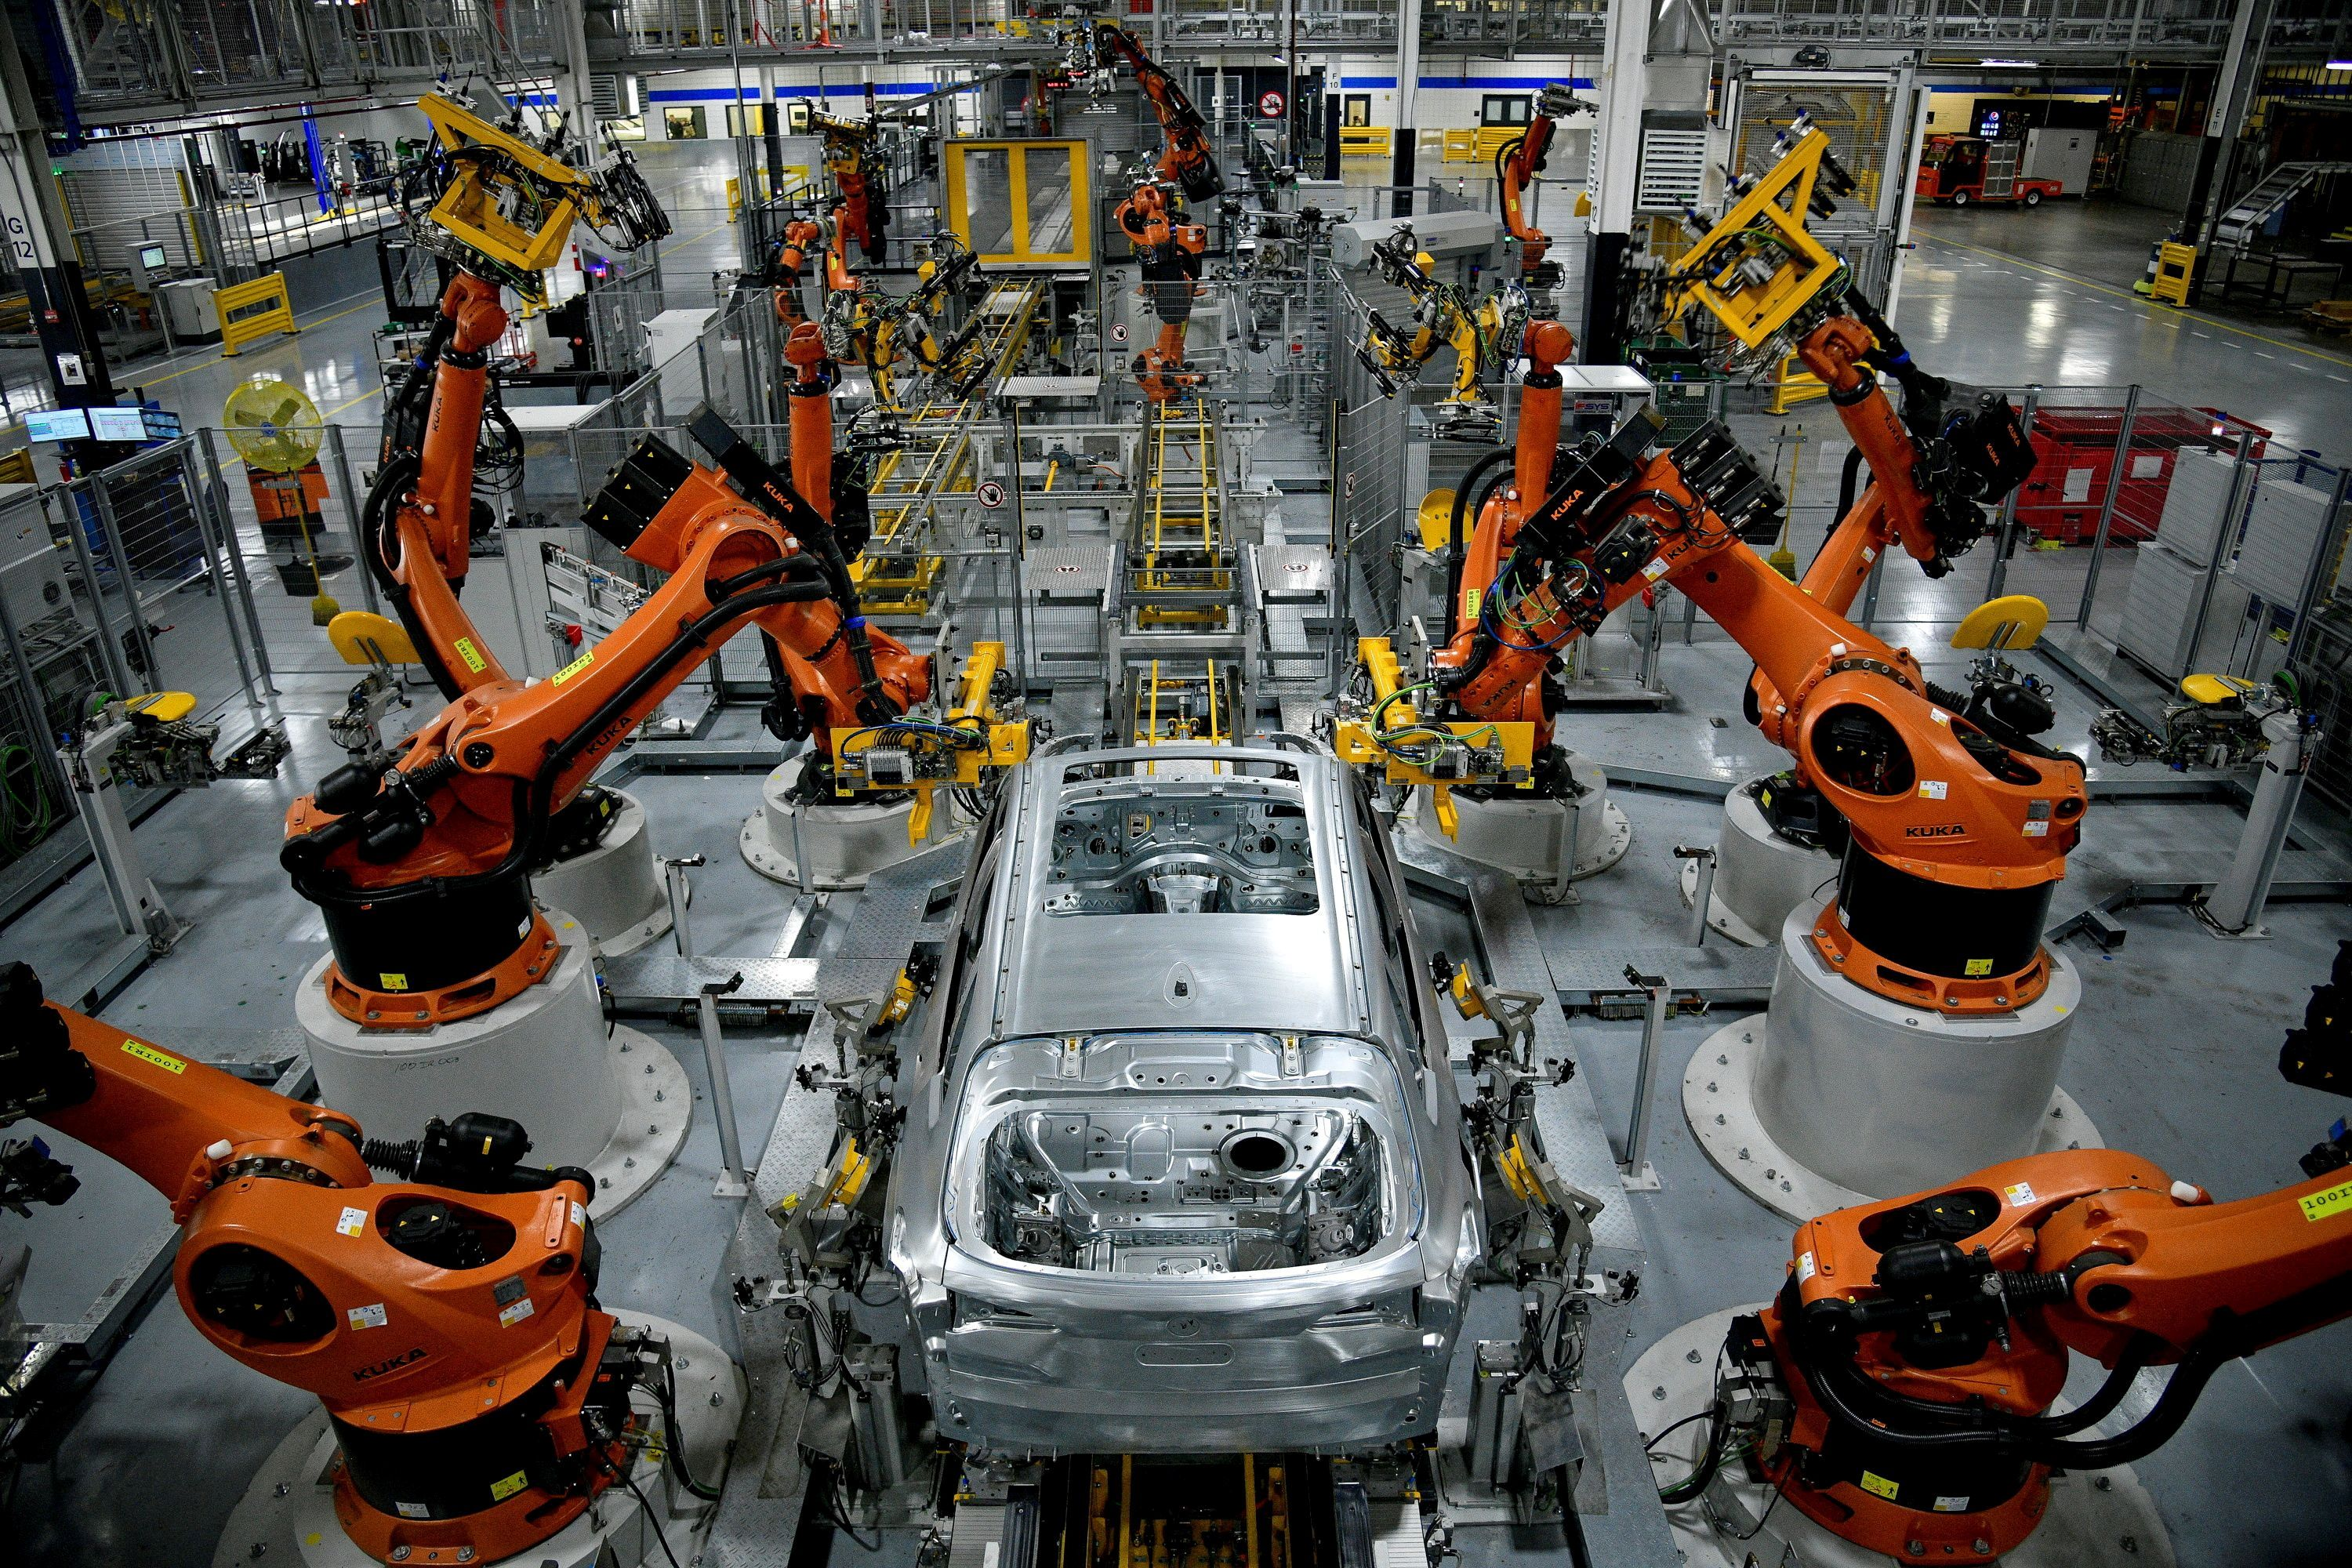 Autonomous robots assemble an X model SUV at the BMW manufacturing facility in Greer, South Carolina, U.S. November 4, 2019.  REUTERS/Charles Mostoller/File Photo